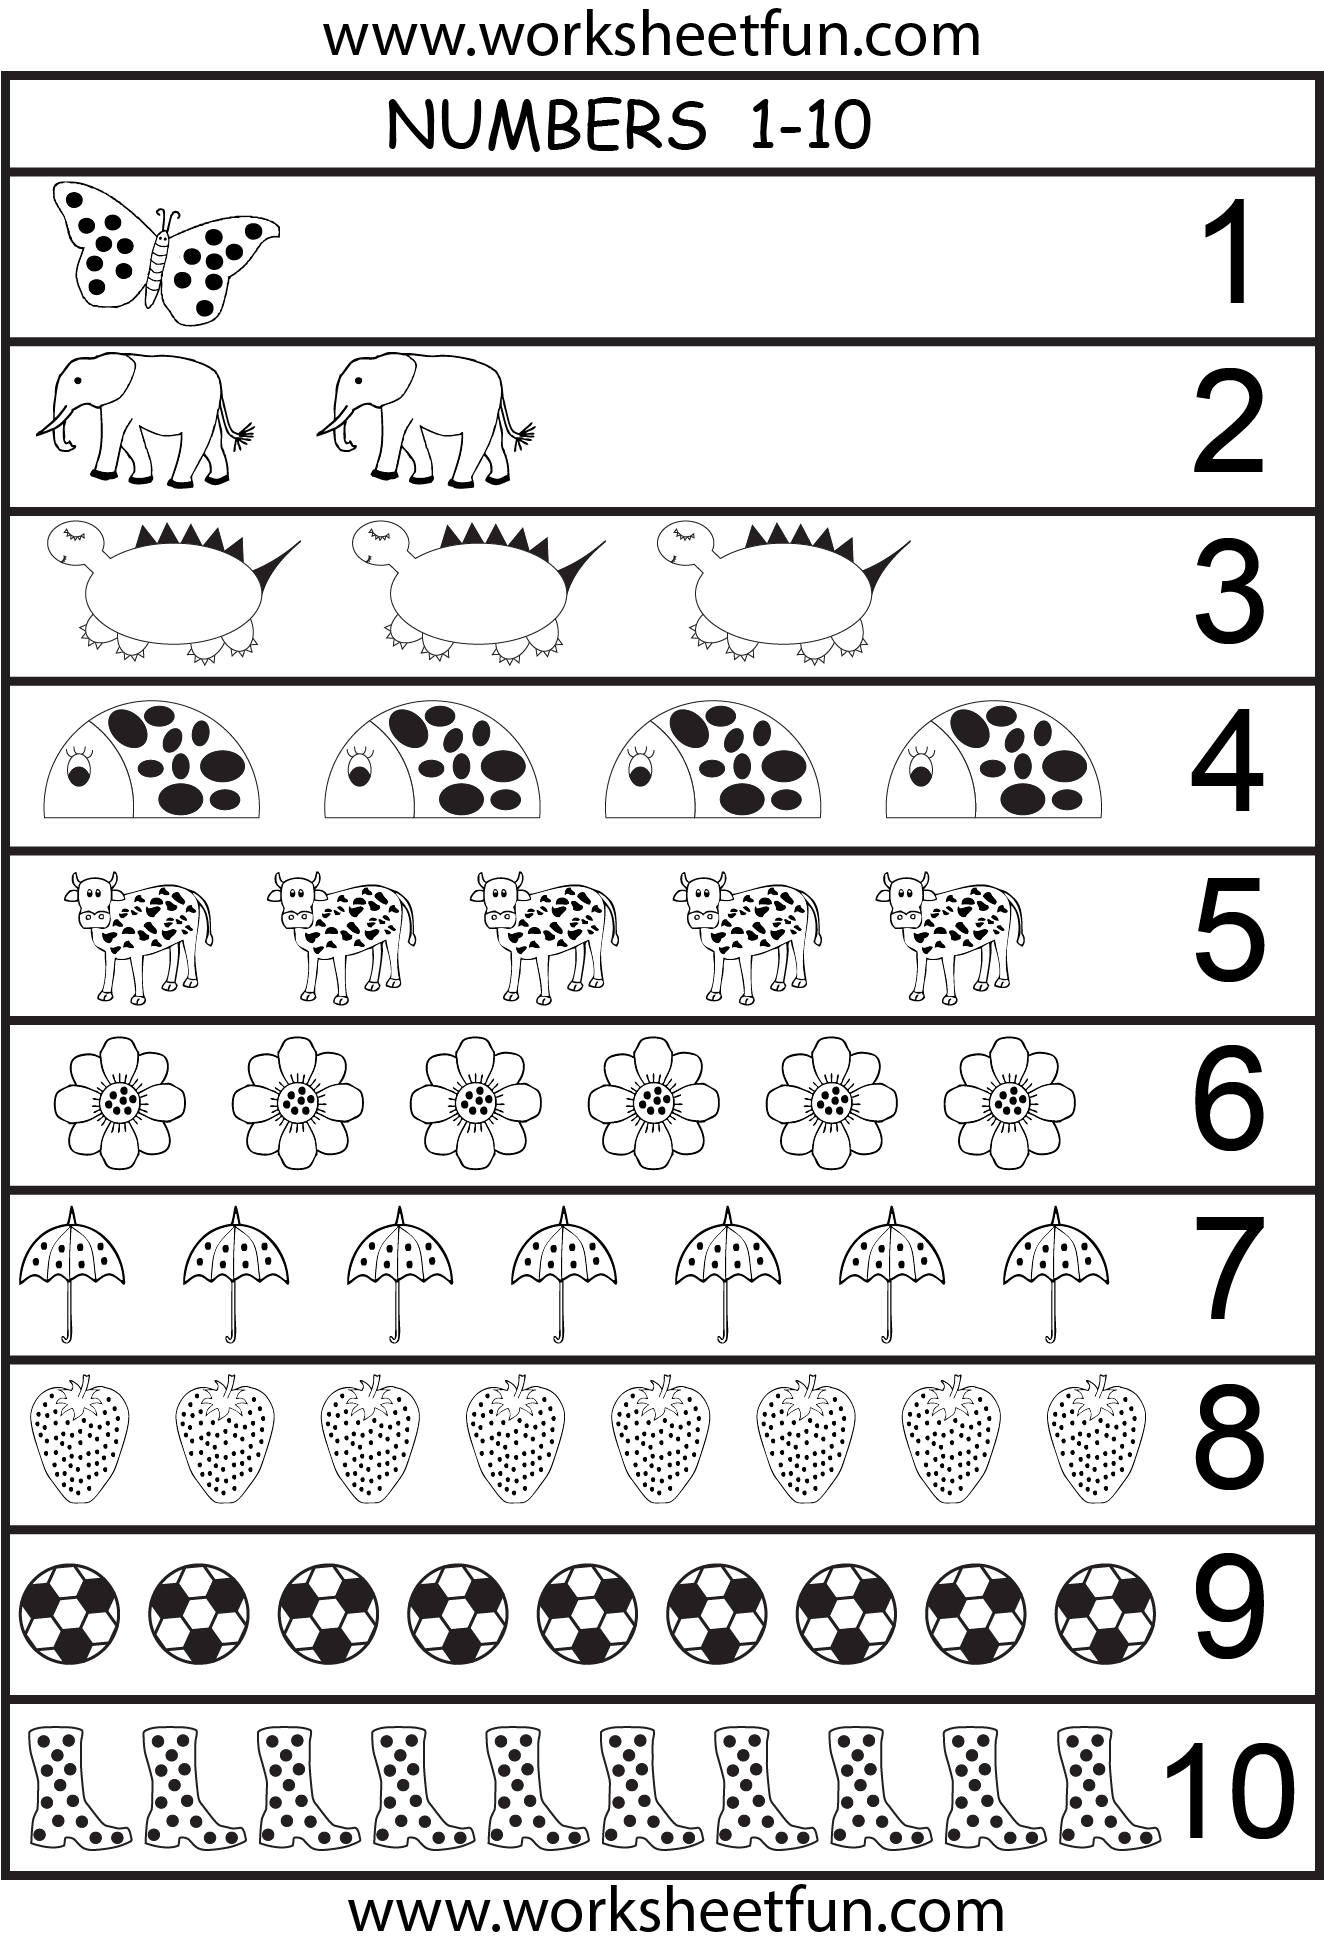 number chart 1-10 | preschool | Pinterest | Number chart